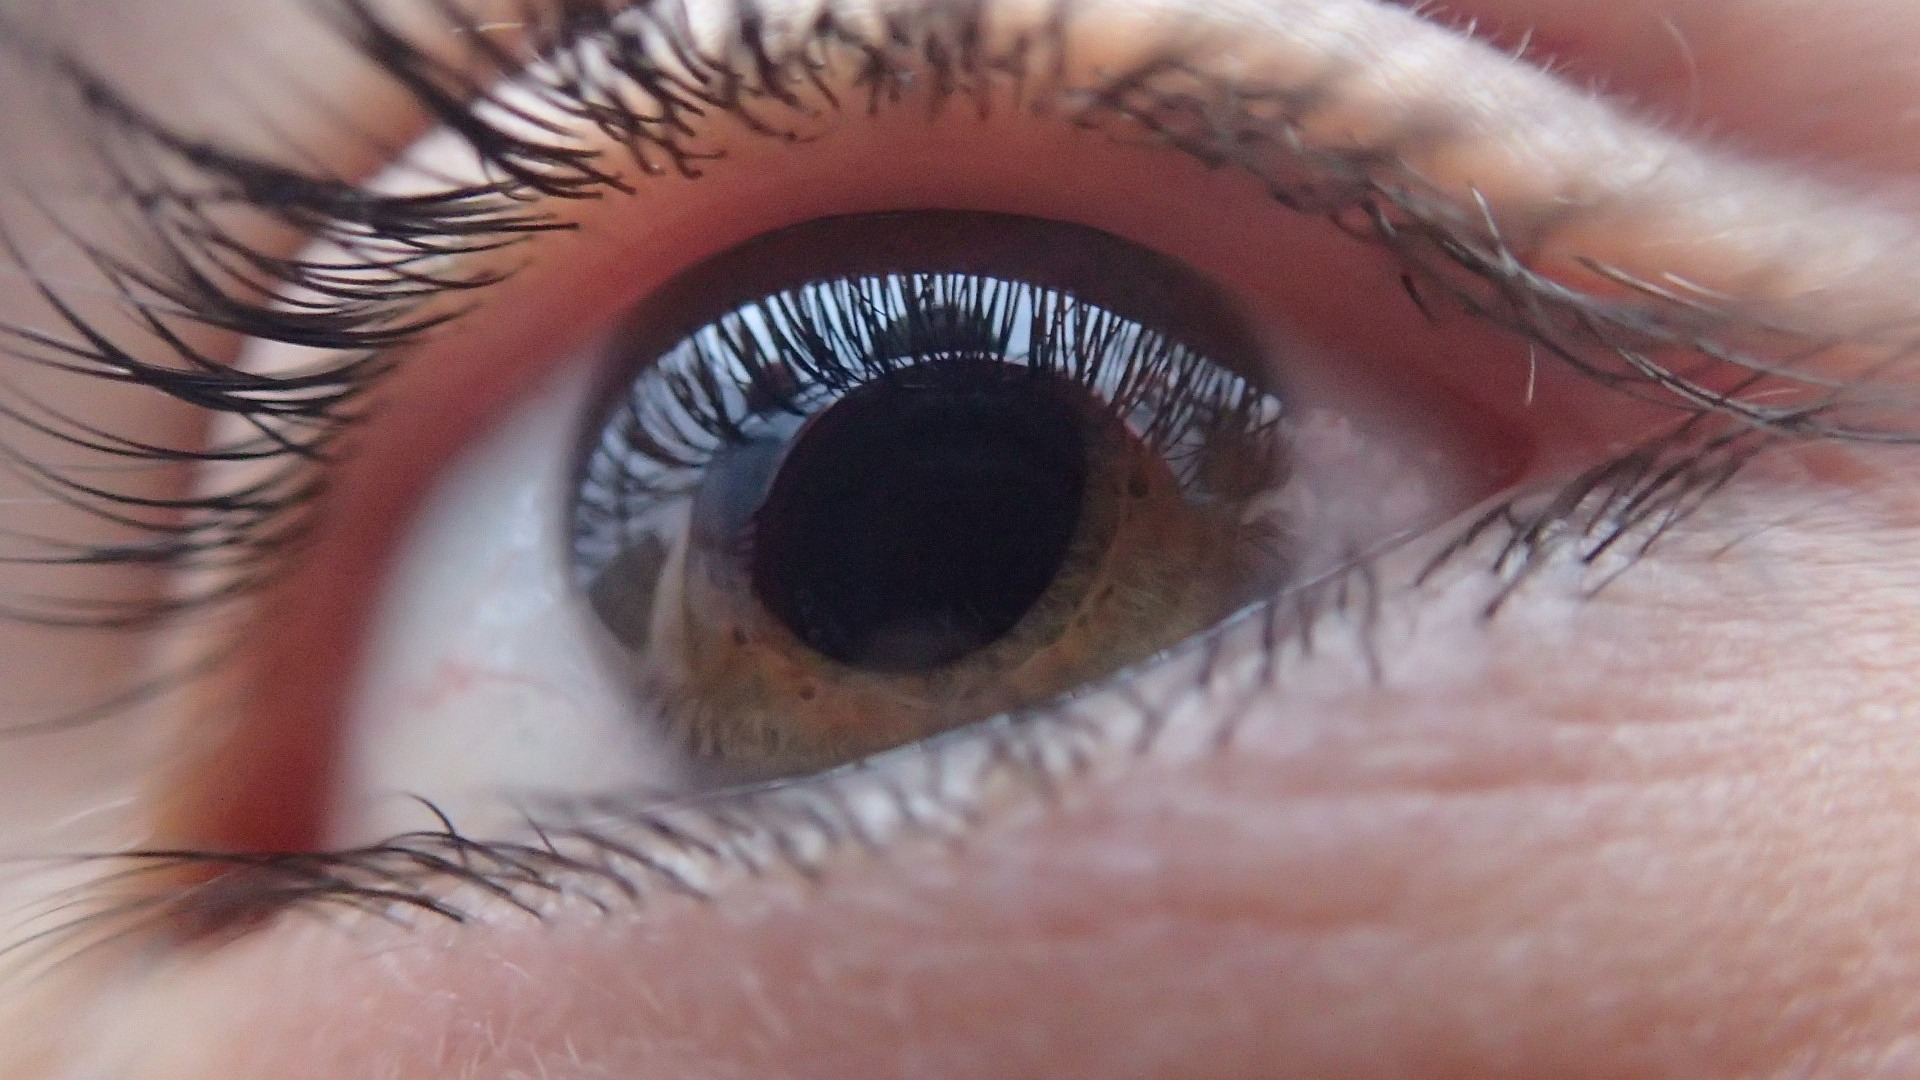 Night blindness: causes, symptoms and treatments